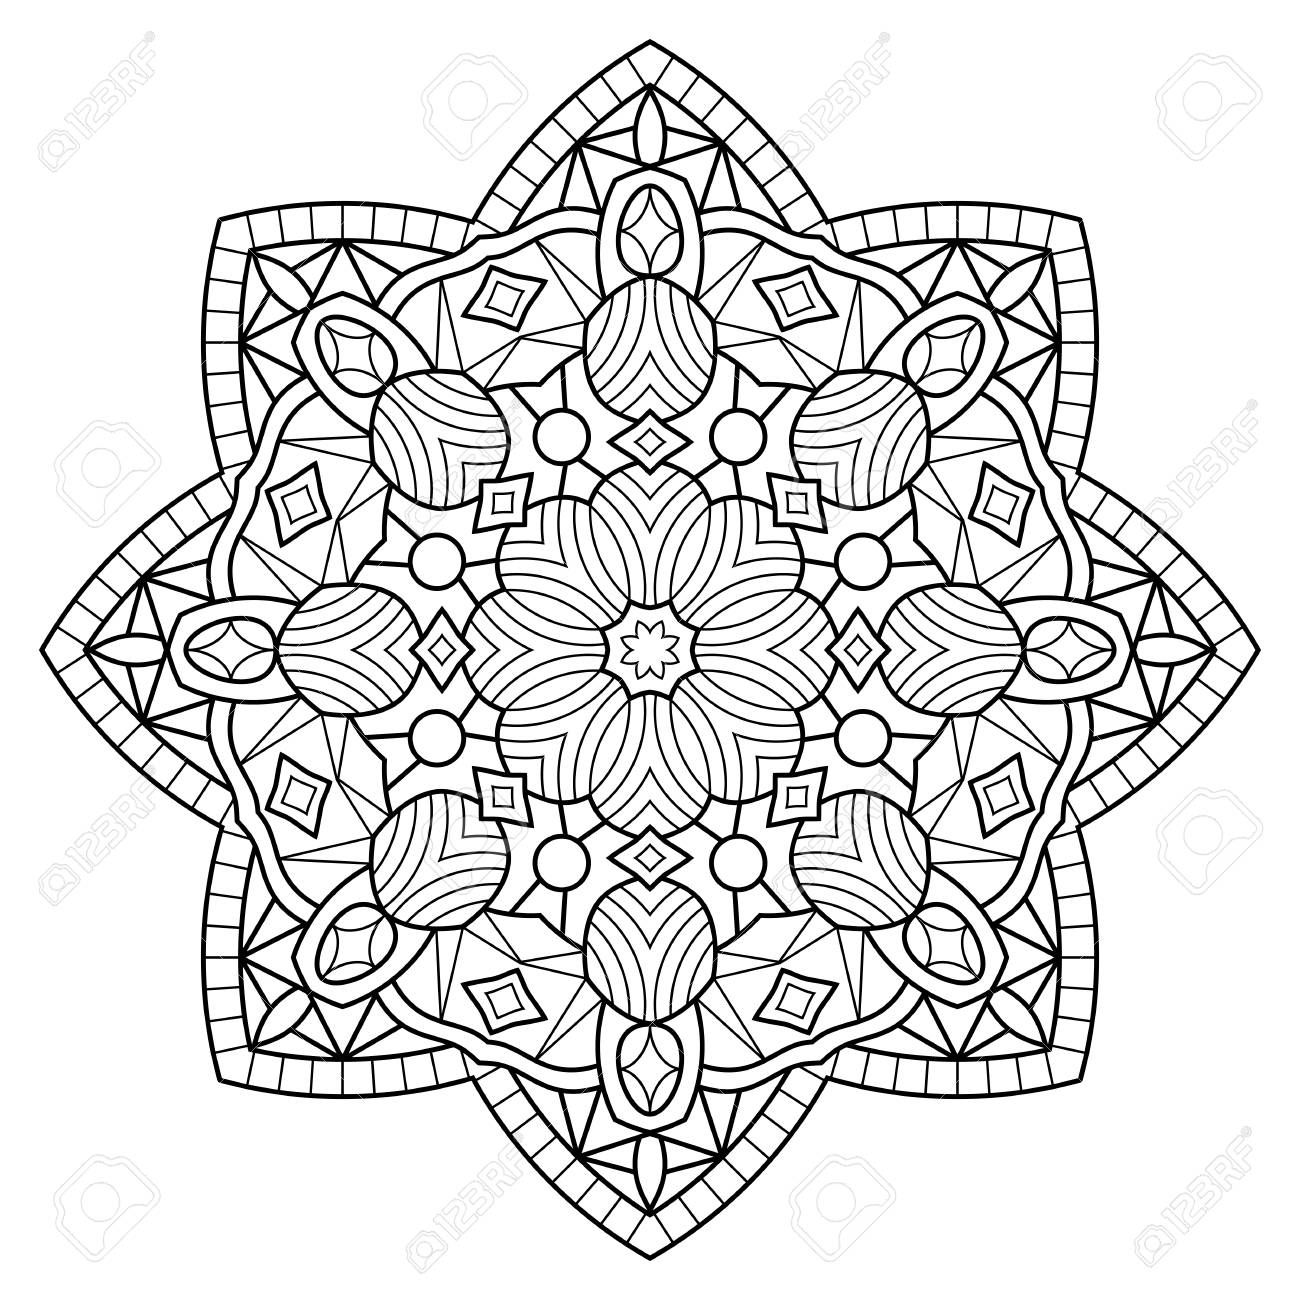 Flower Mandala Coloring Pages Coloring Pages Coloring Pages